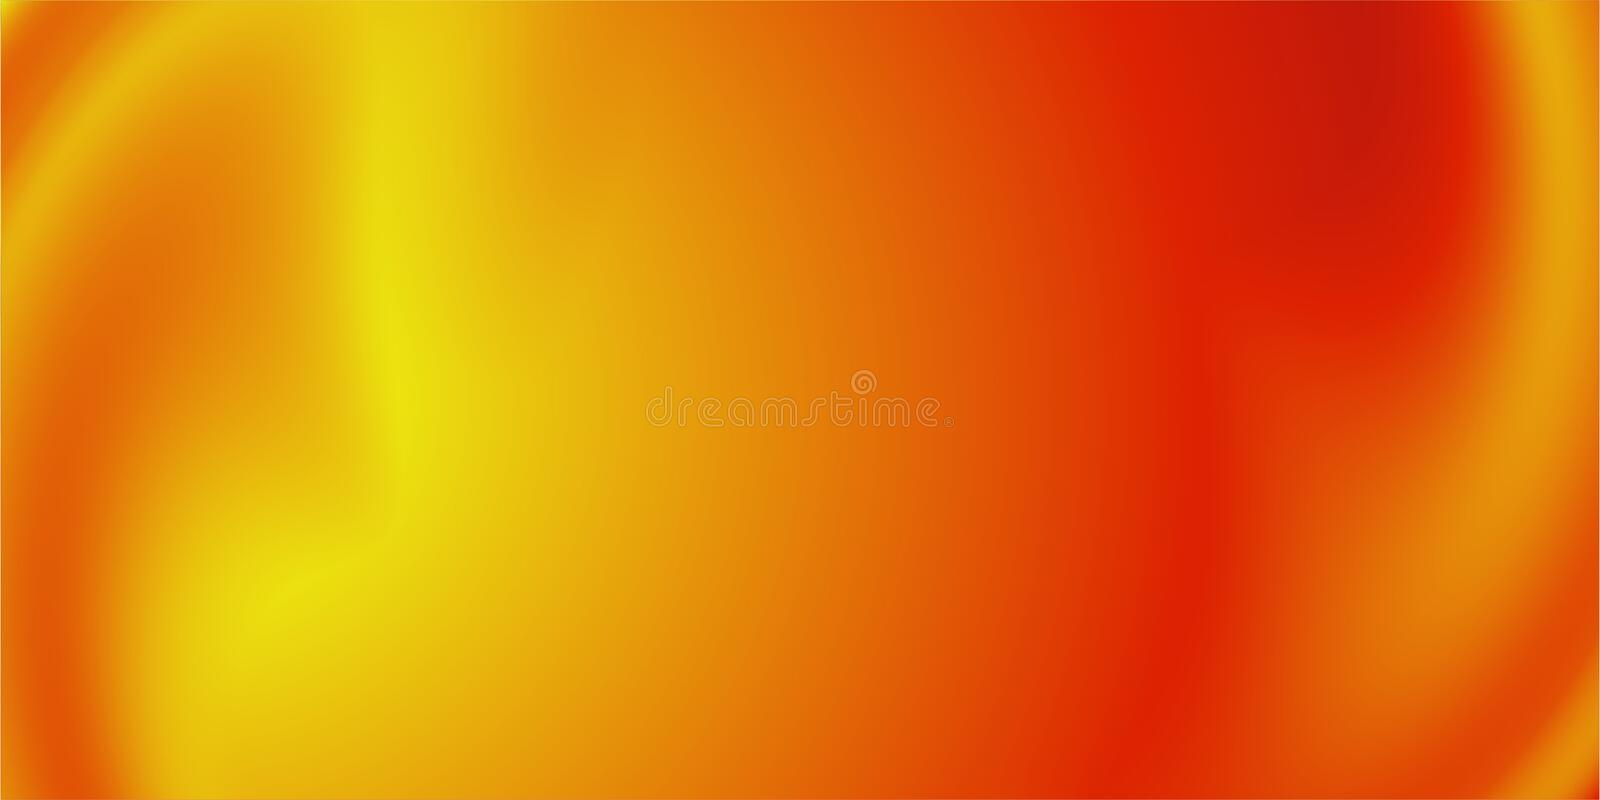 abstract background orange red yellow bright color patterns full aesthetic colors 172727241